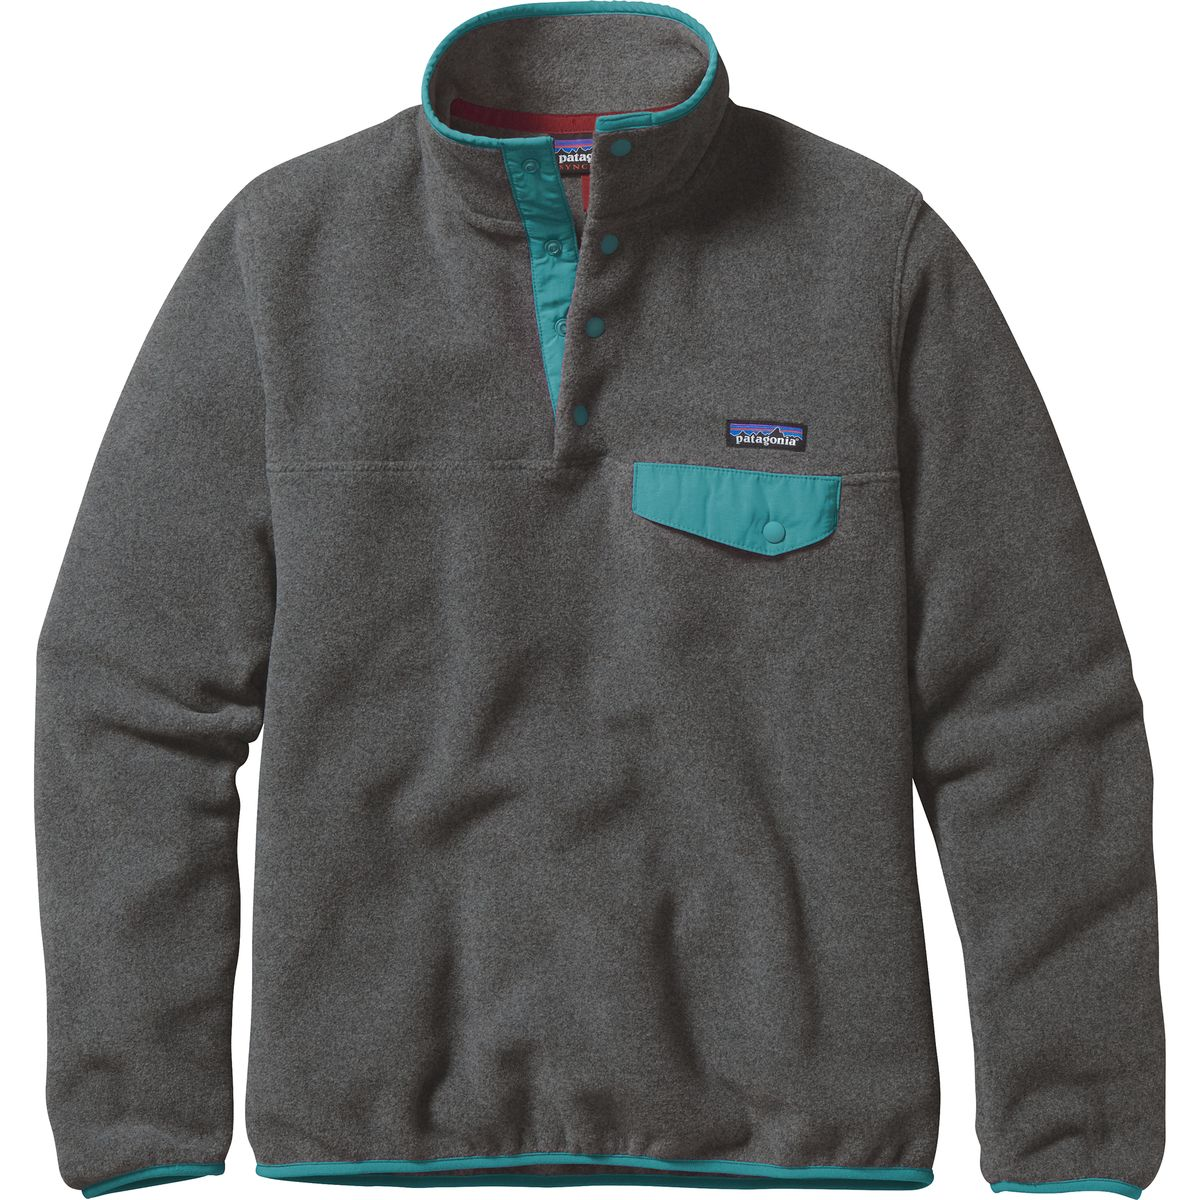 Patagonia Synchilla Lightweight Snap-T Fleece Pullover - Women